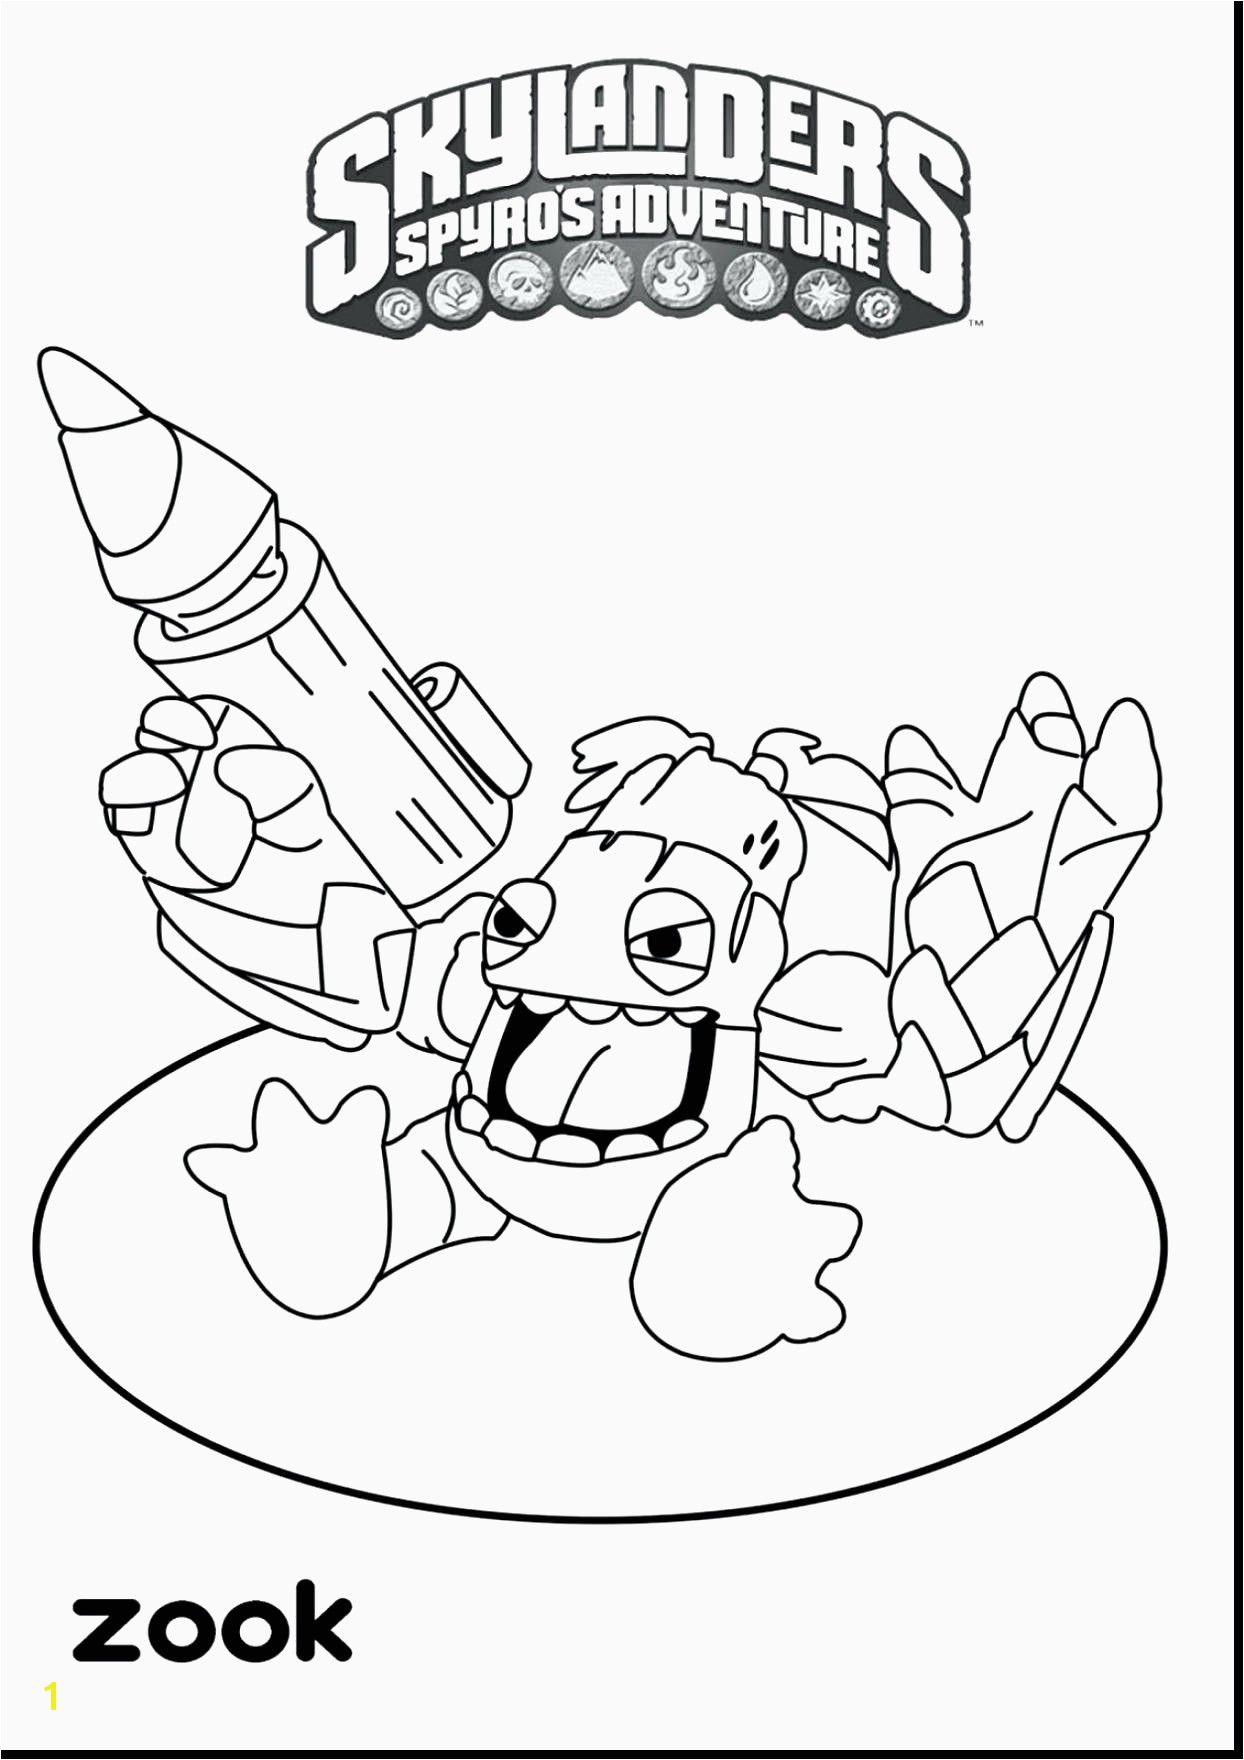 Free Printable Coloring Pages Spongebob A Coloring Page Spongebob Elegant Awesome Free Coloring Pages